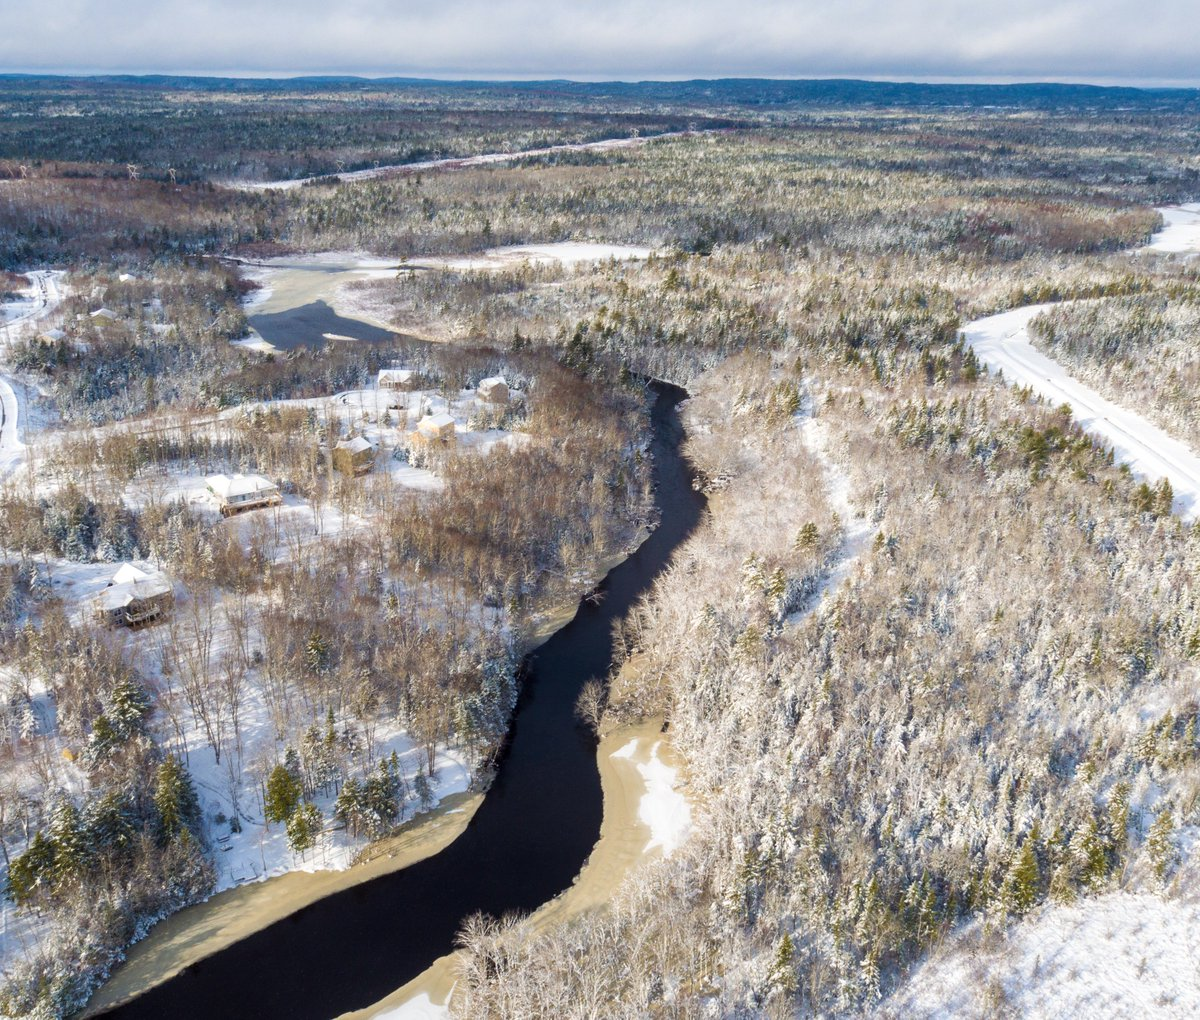 A few more wintery aerials of McCabe Lake area from @flitelab